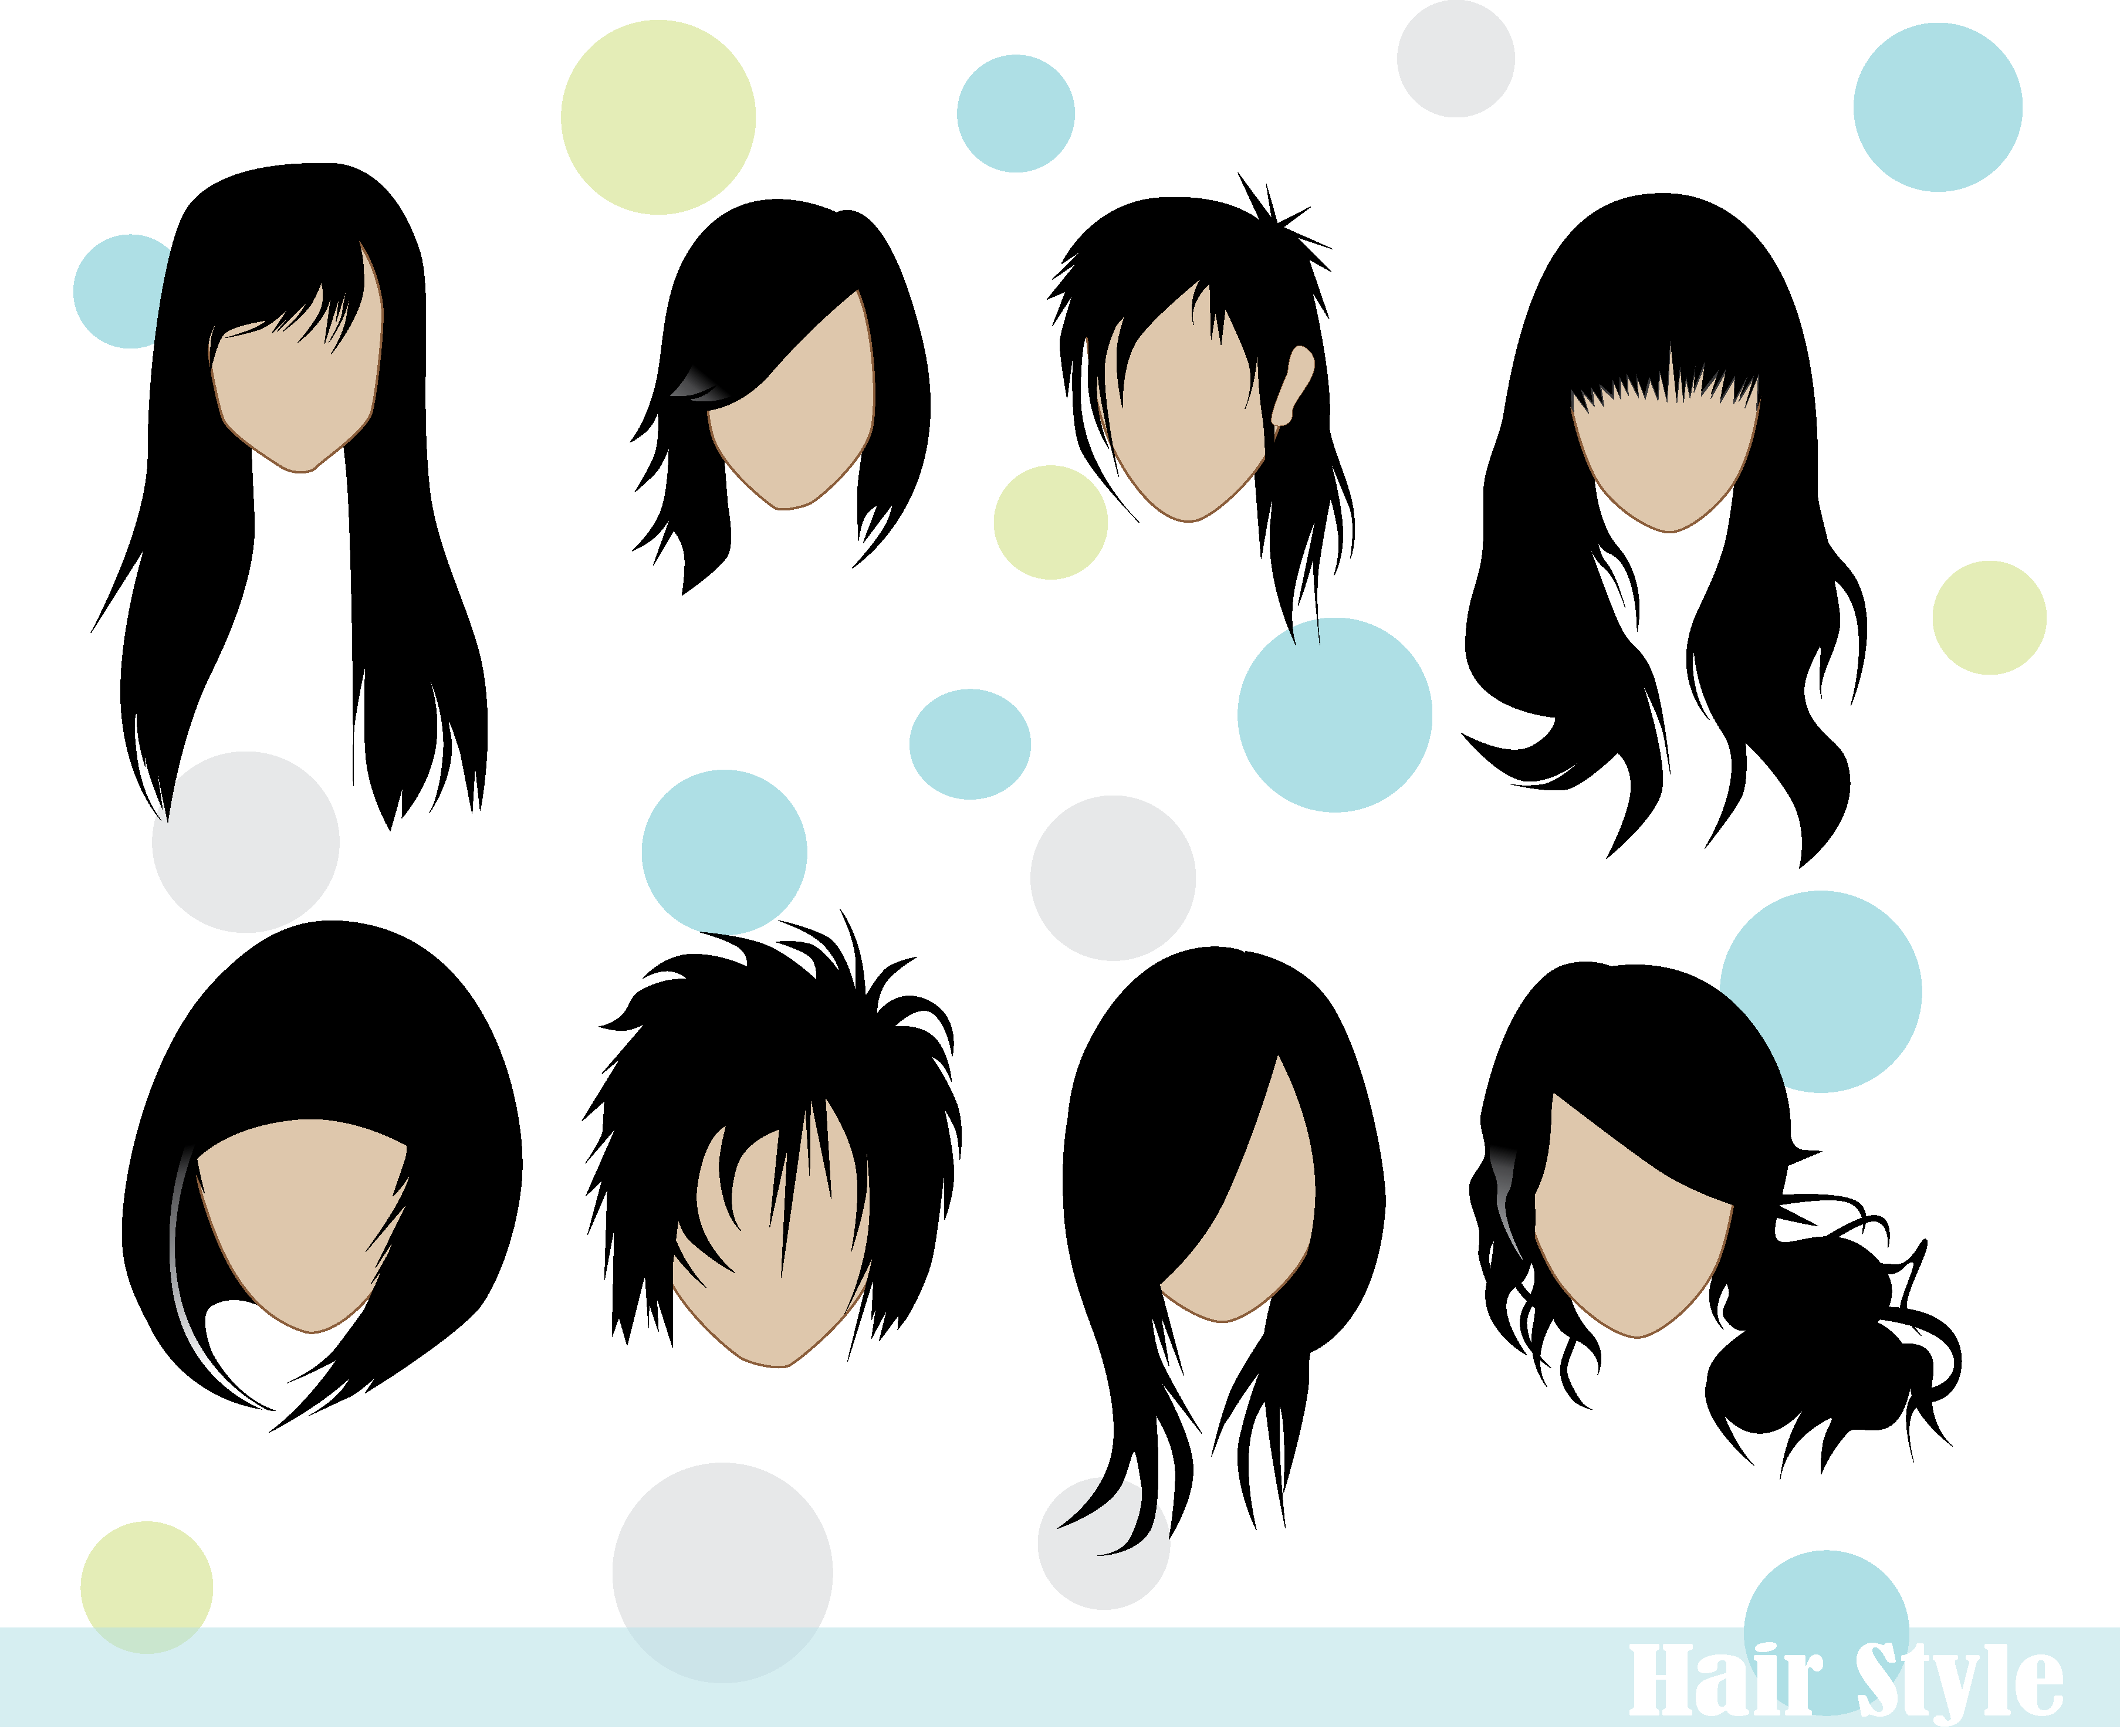 Hair Style Png: Hair Styles Vector Vector Icon Template Clipart Free Download